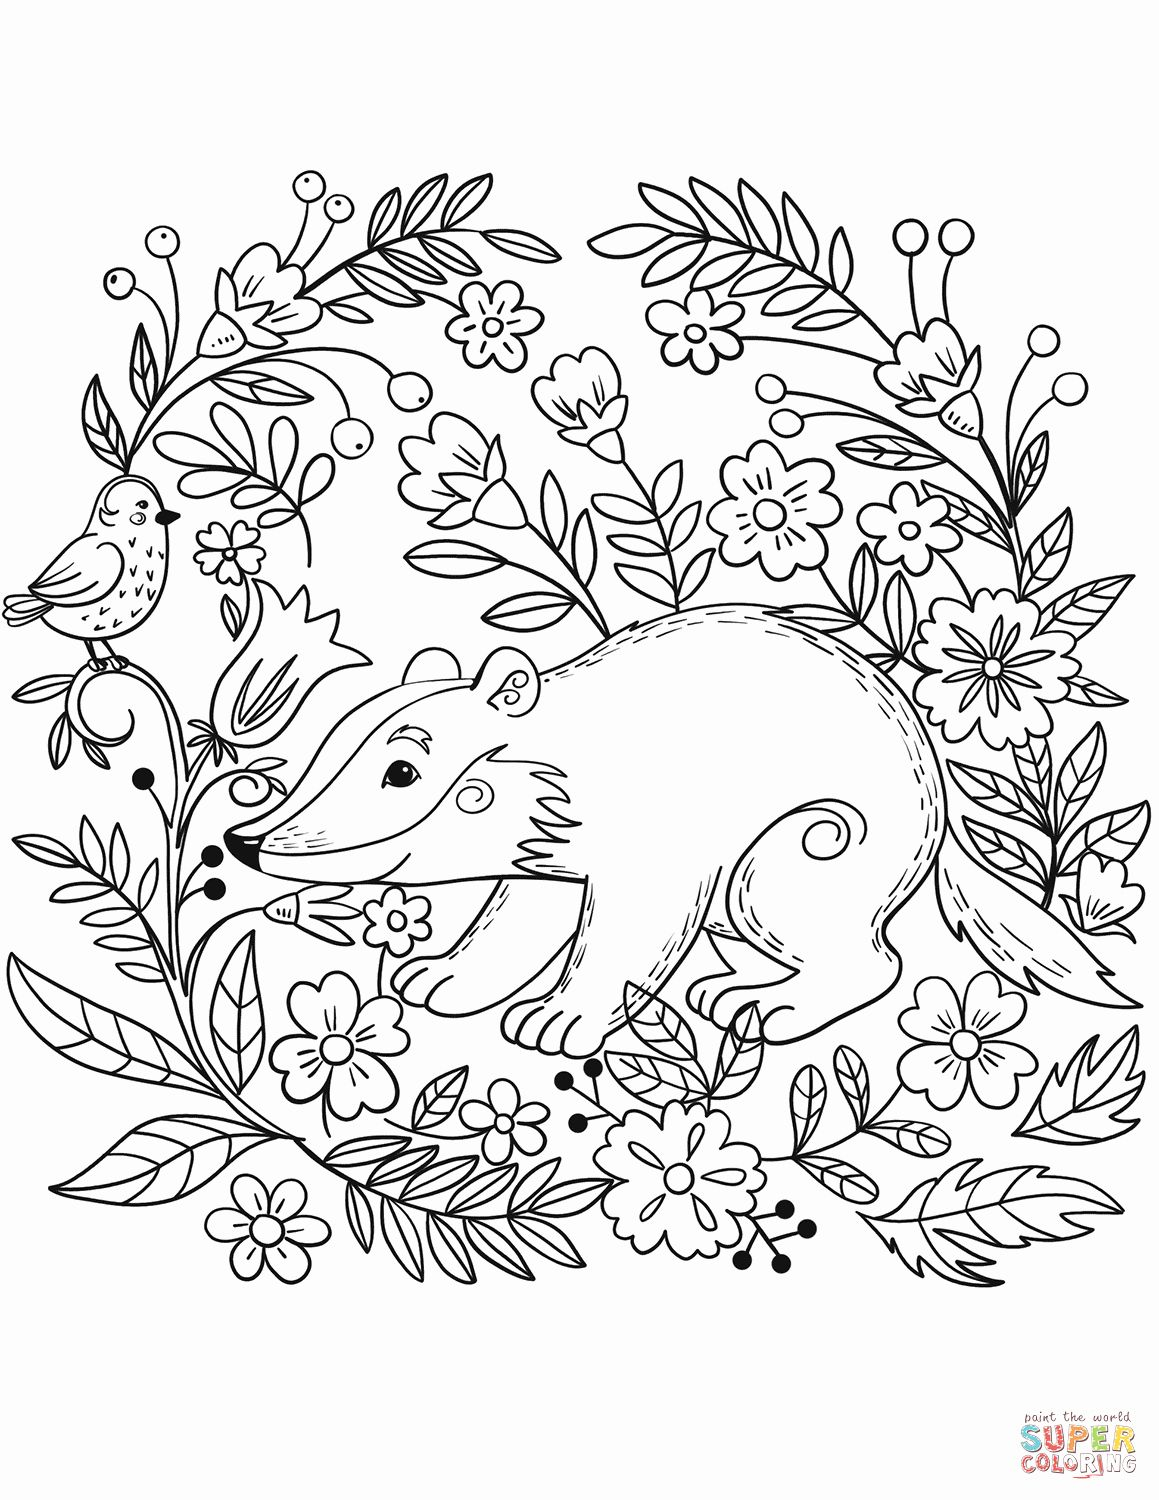 nocturnal animals coloring sheets nocturnal animals coloring pages timeless miraclecom coloring animals sheets nocturnal